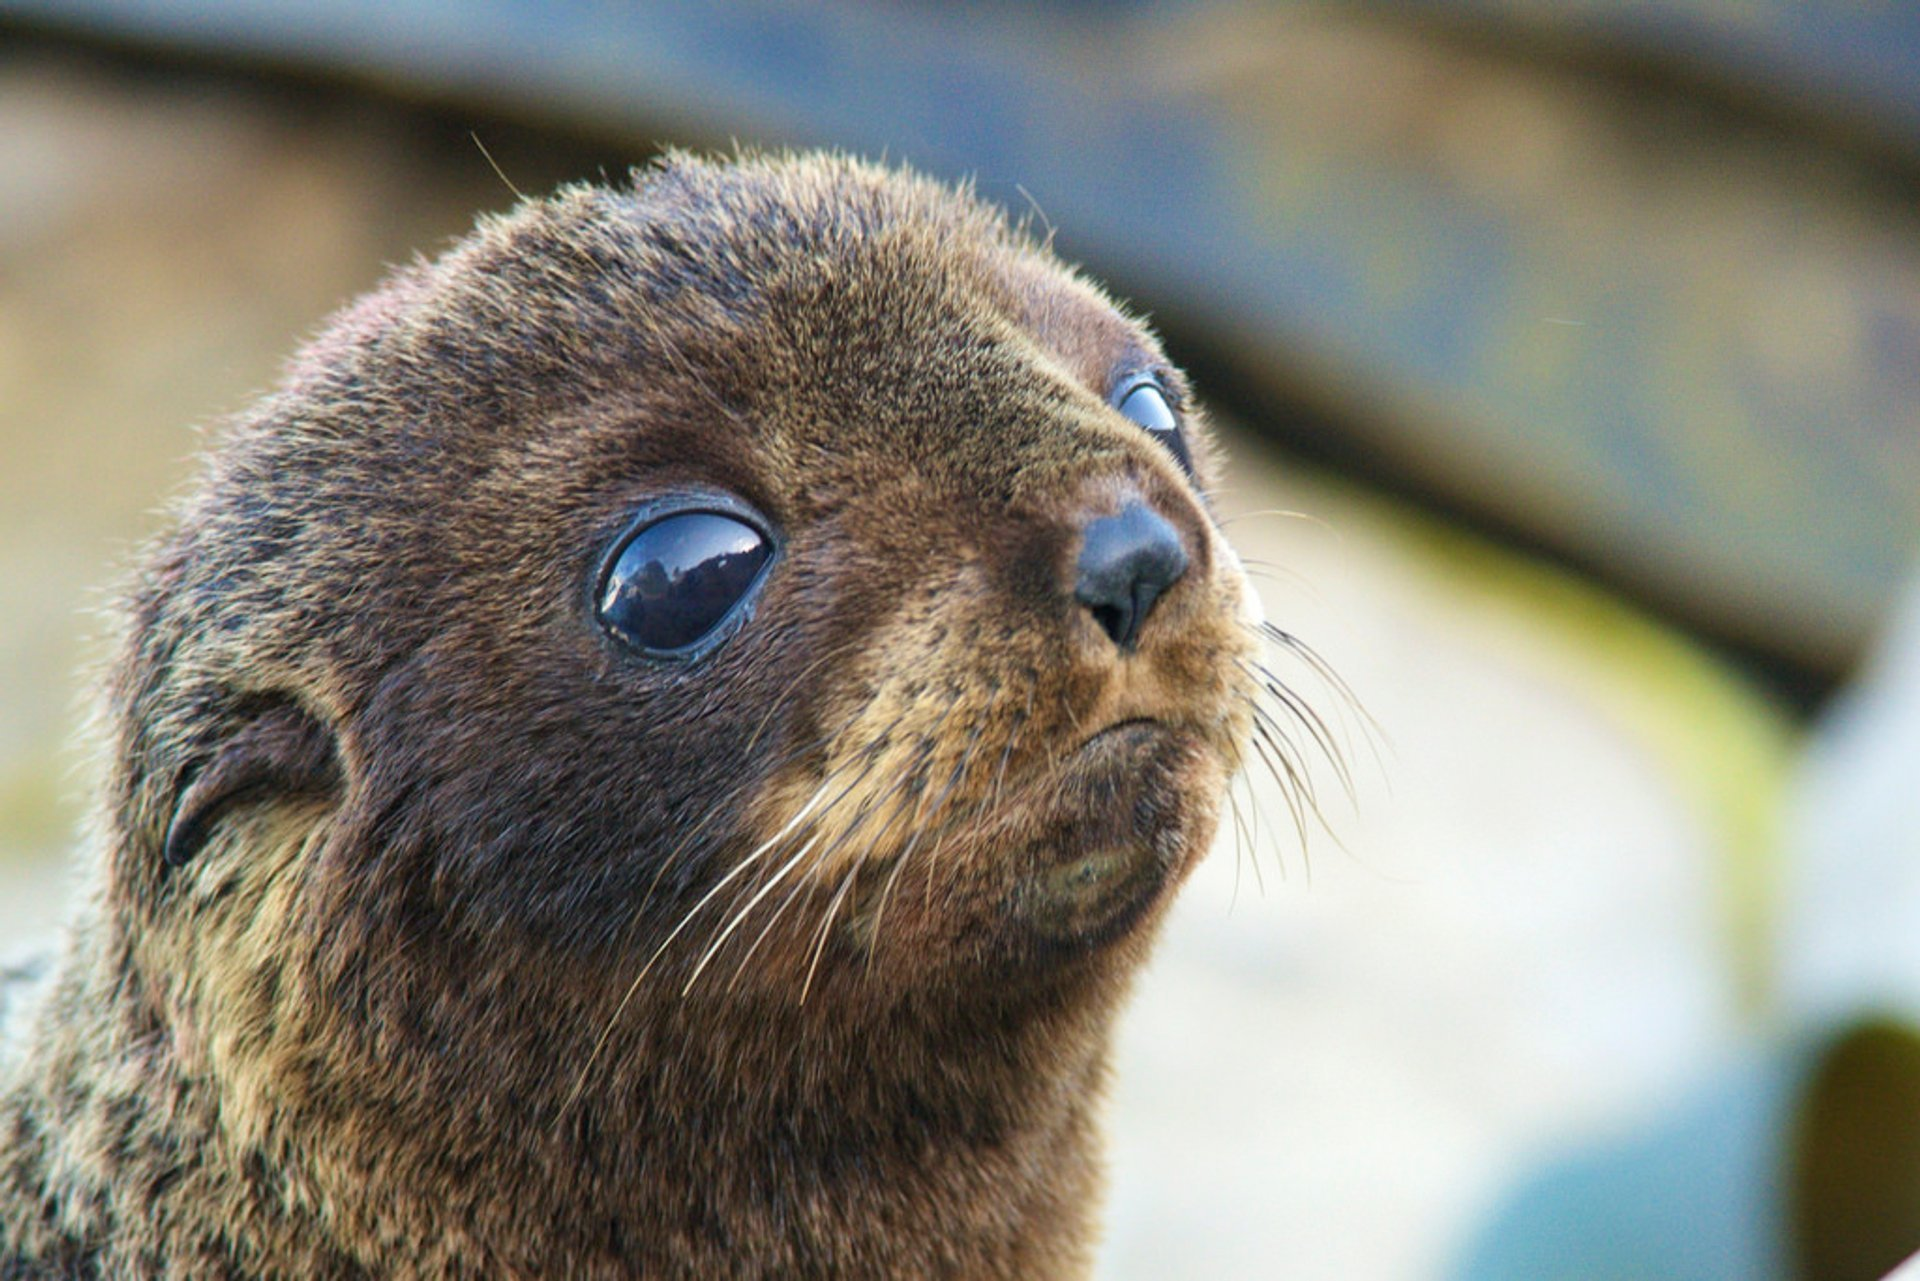 Baby Fur Seals Watching in New Zealand 2020 - Best Time